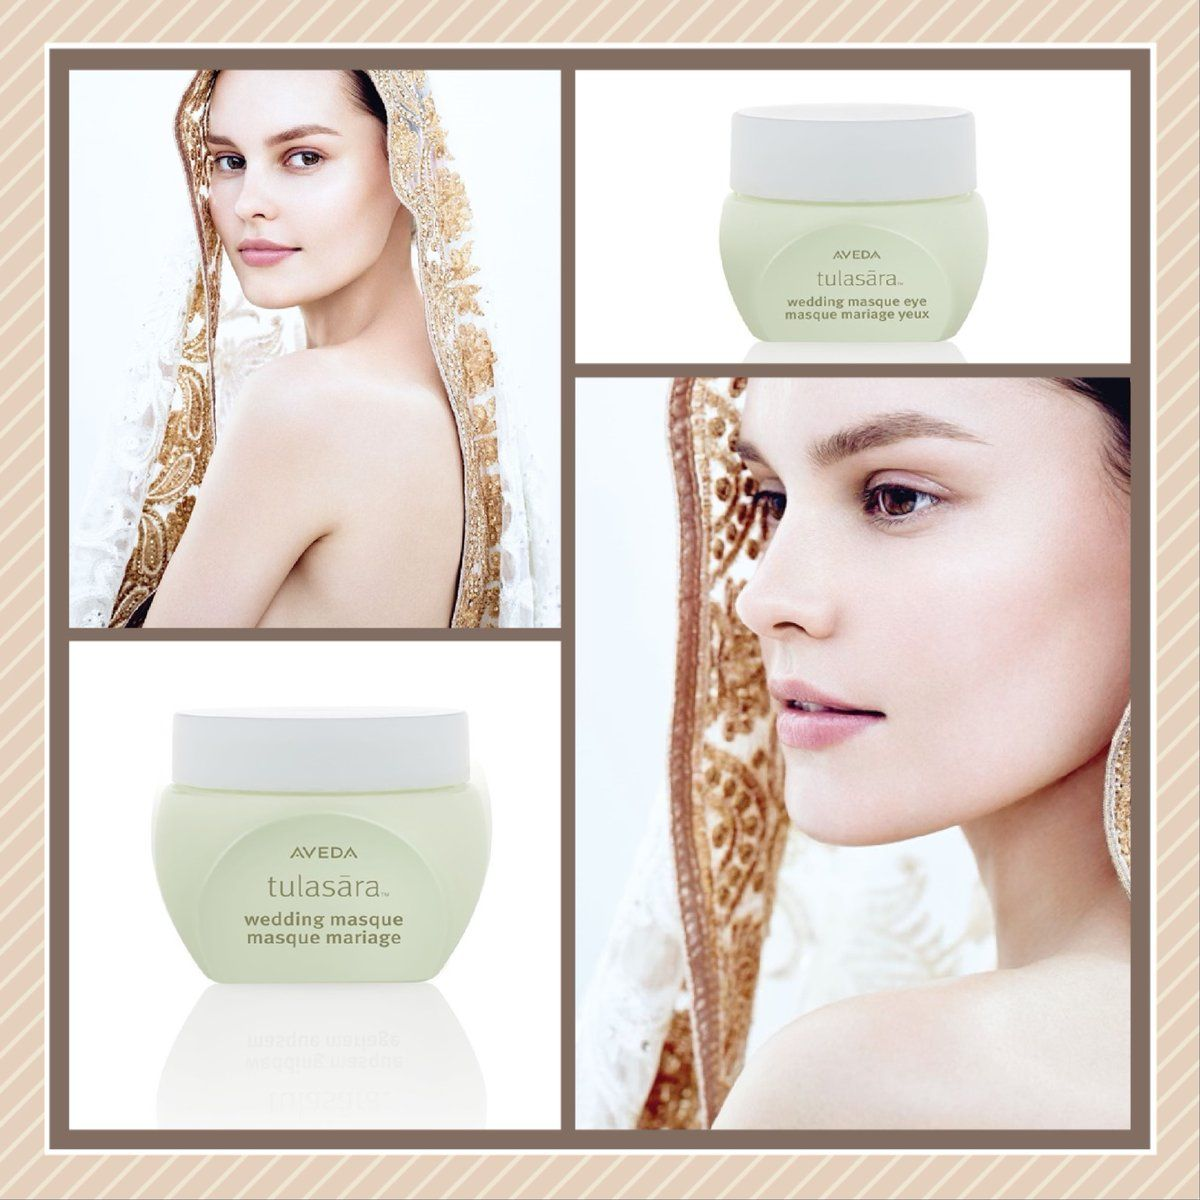 Amazing Skincare Results without Any Downtime! Skin care